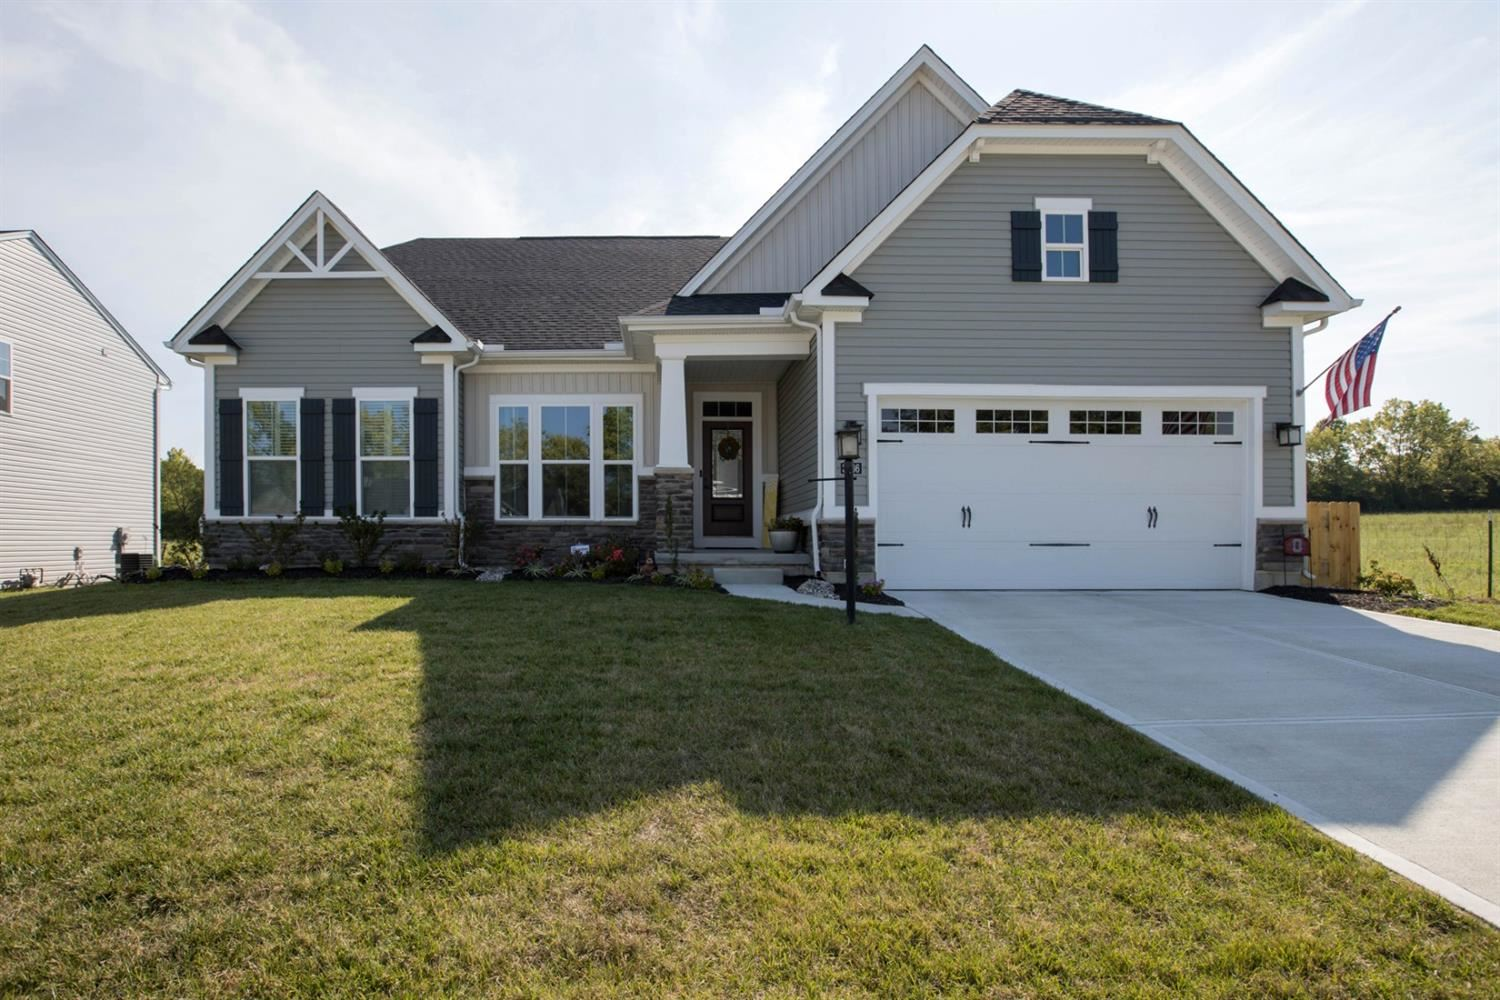 3636 Kassidy Drive, Franklin, OH 45005 - #: 1675575